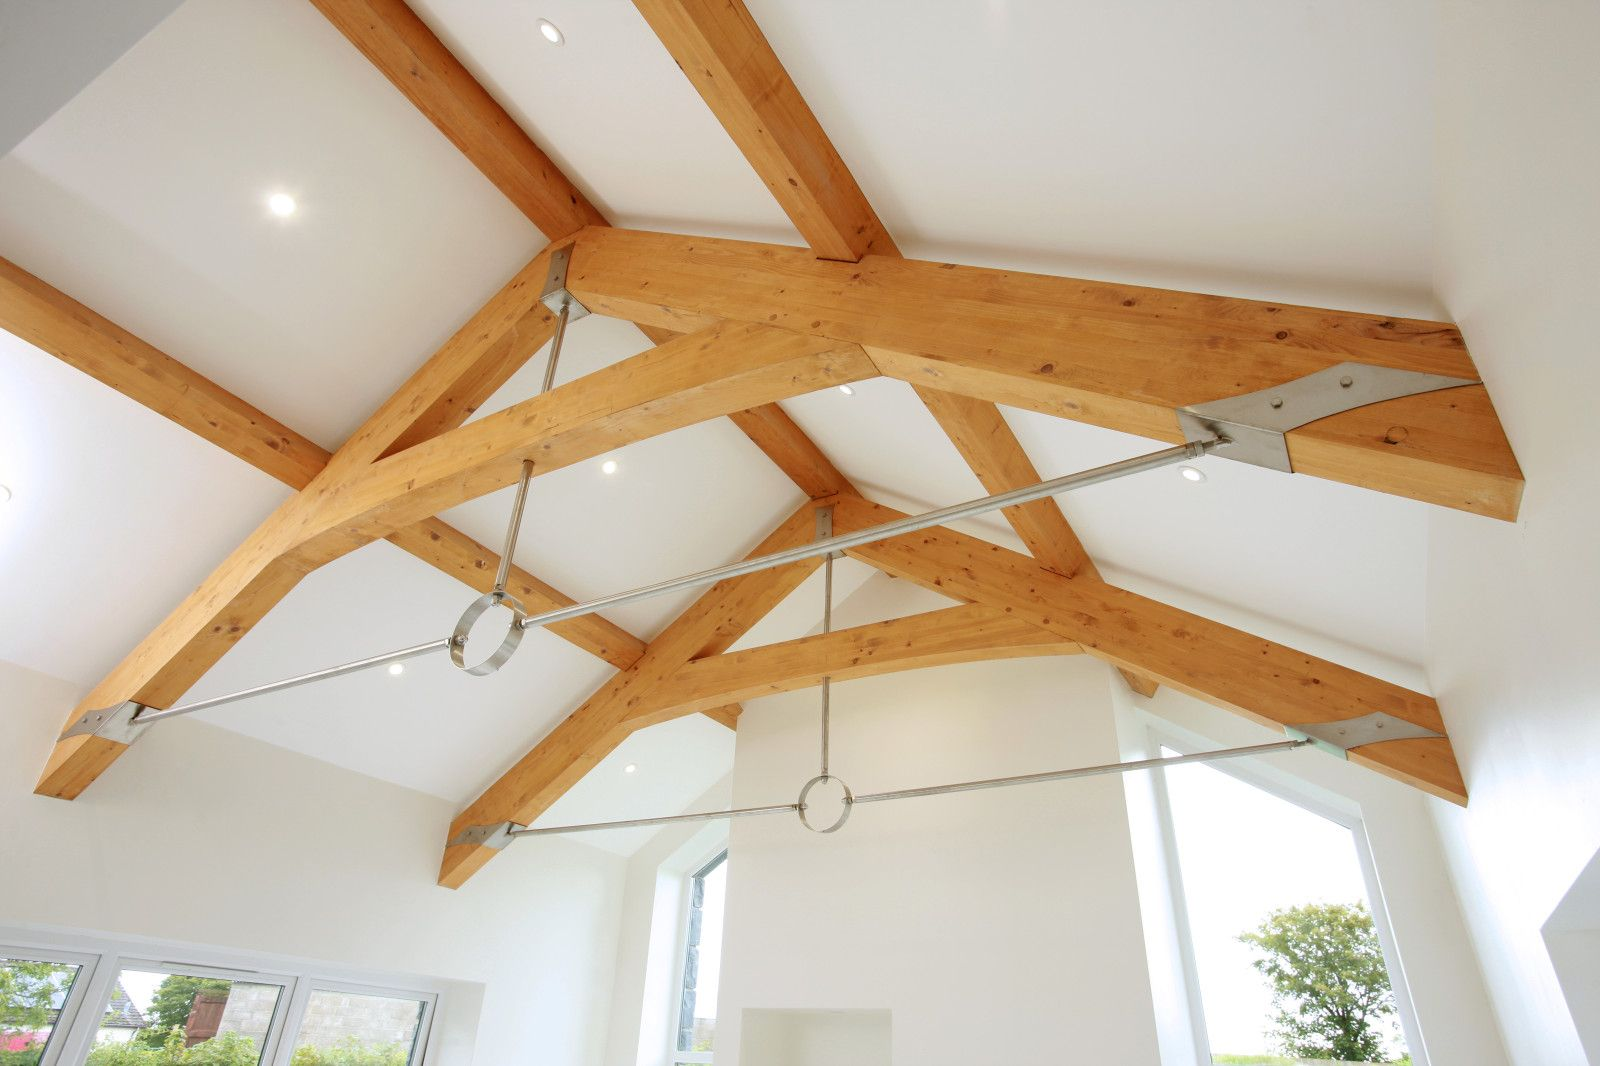 Glulam Beams Glenfort Feature Truss Ireland Northern Ireland Roof Trusses Beams Timber Ceiling